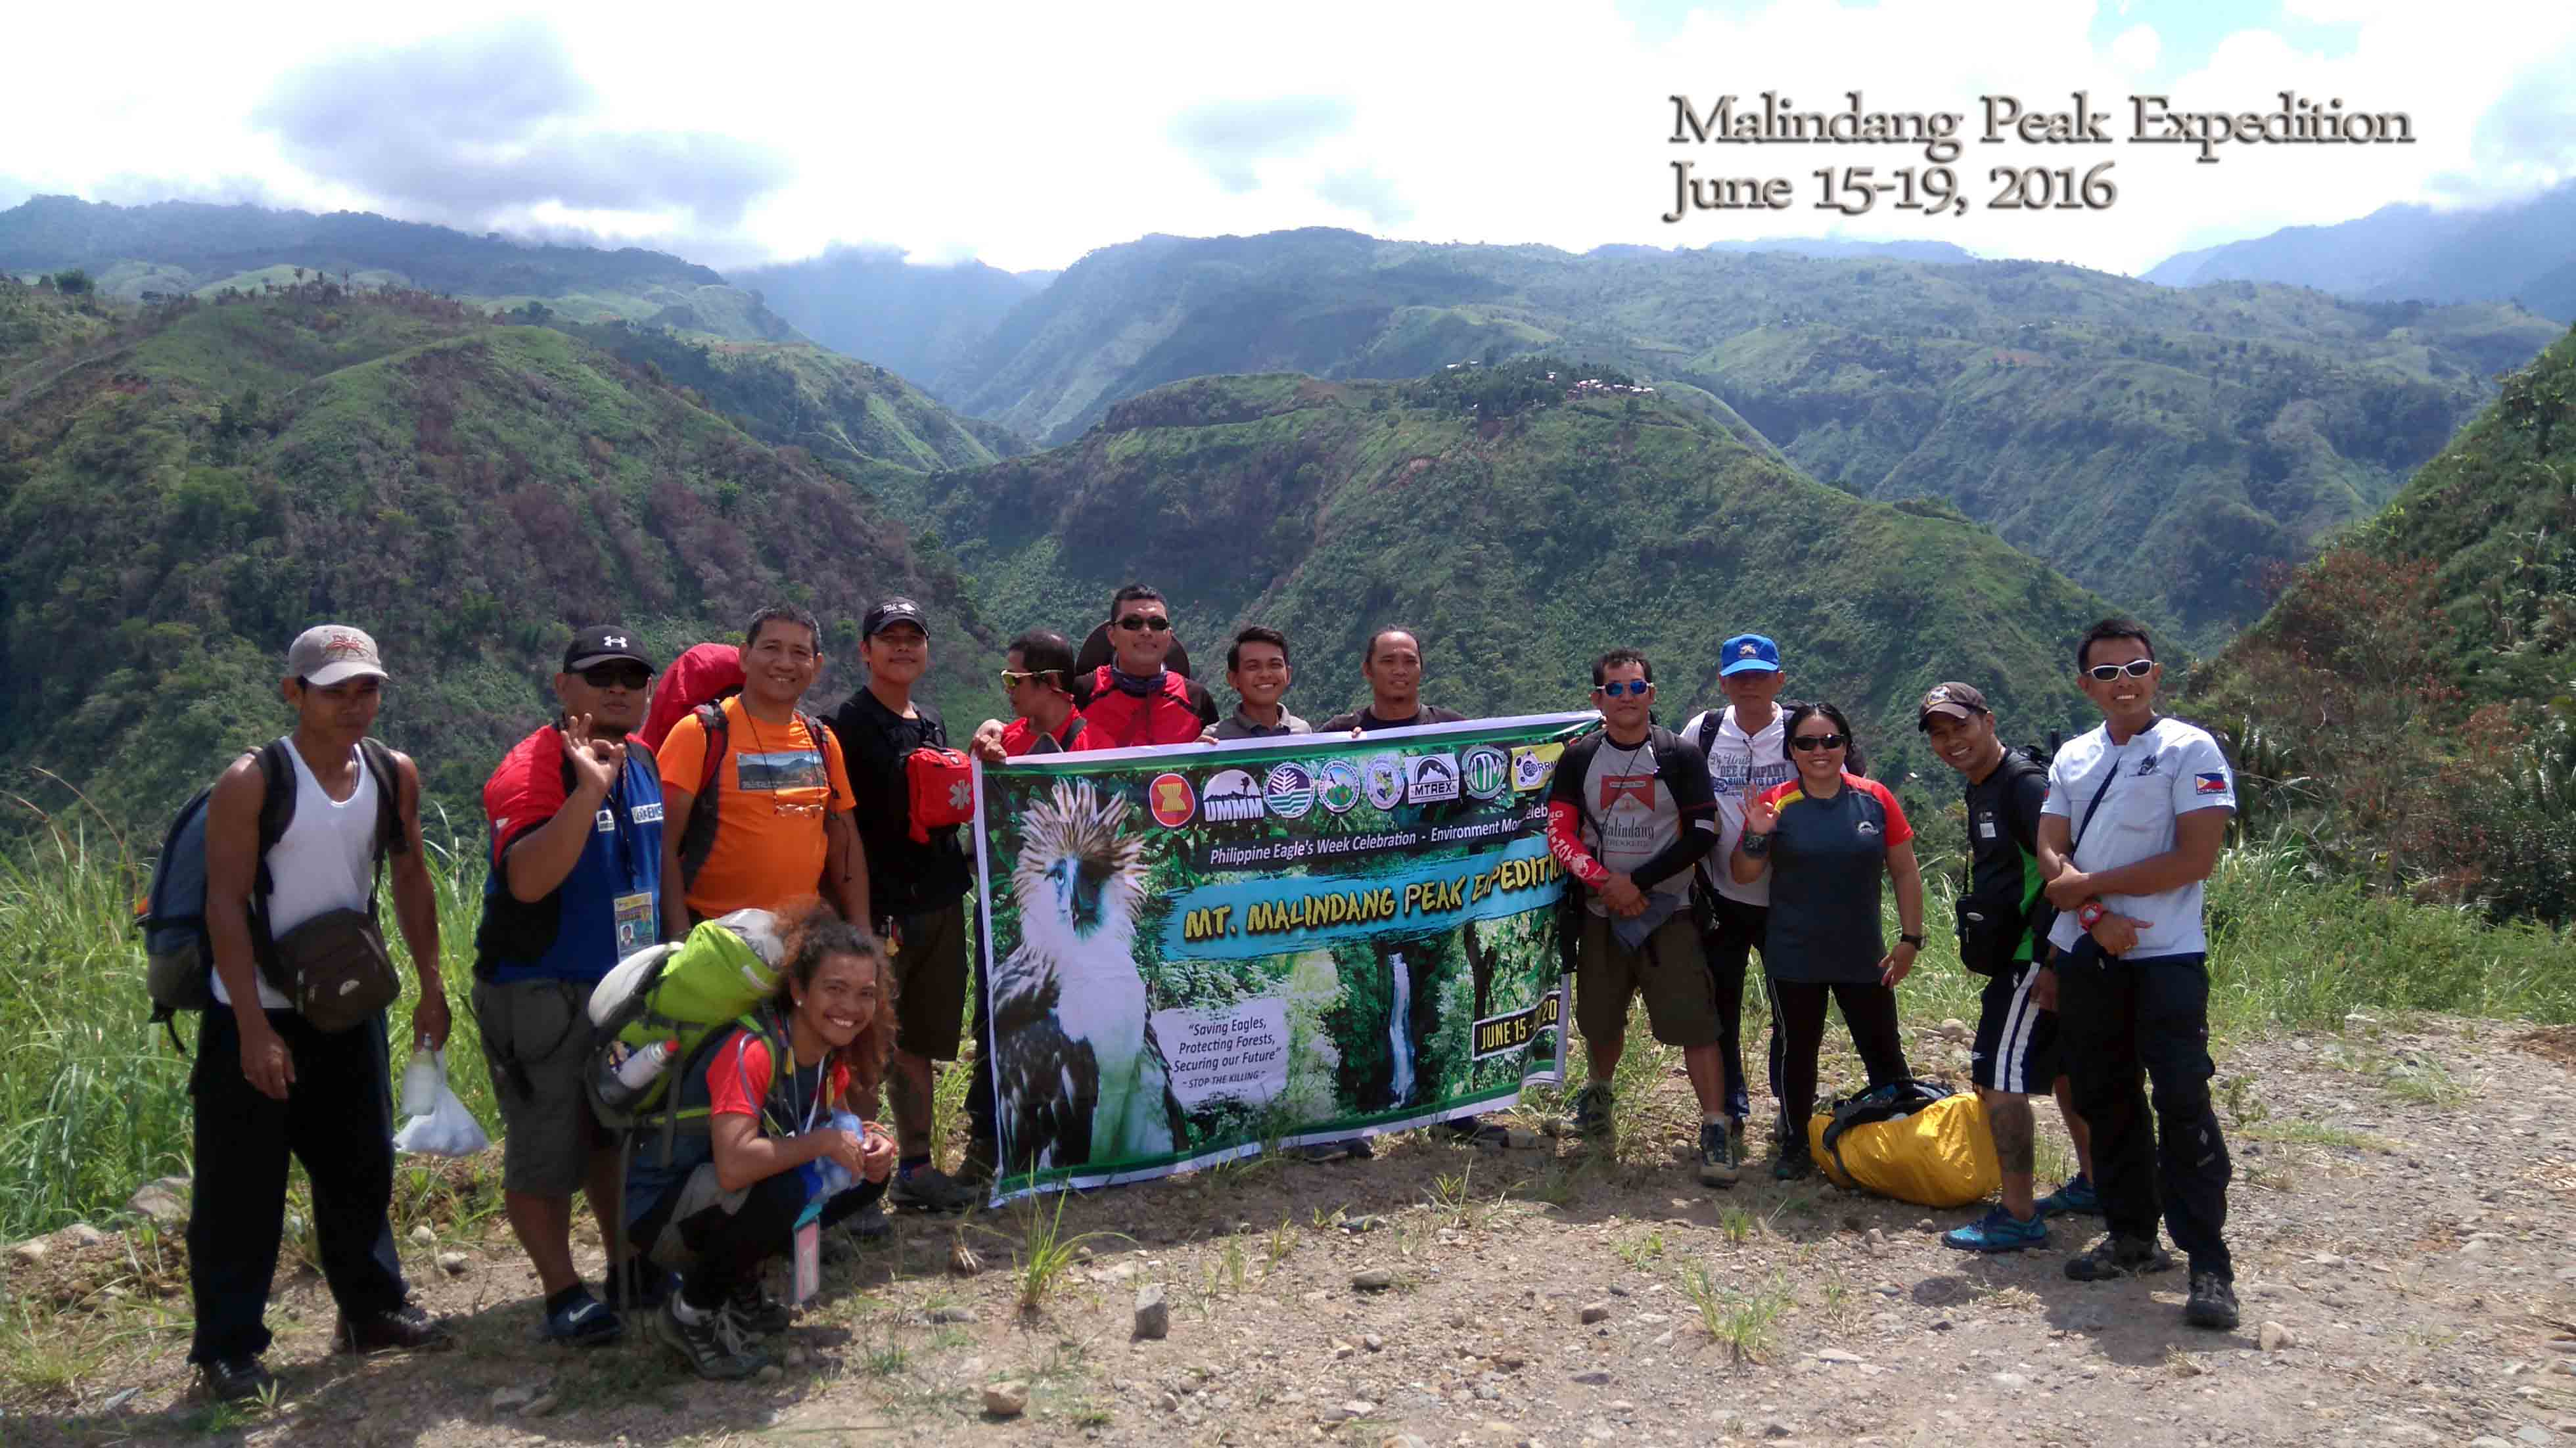 thephotos/2016/malindang peak expedition/DSC_1212.jpg